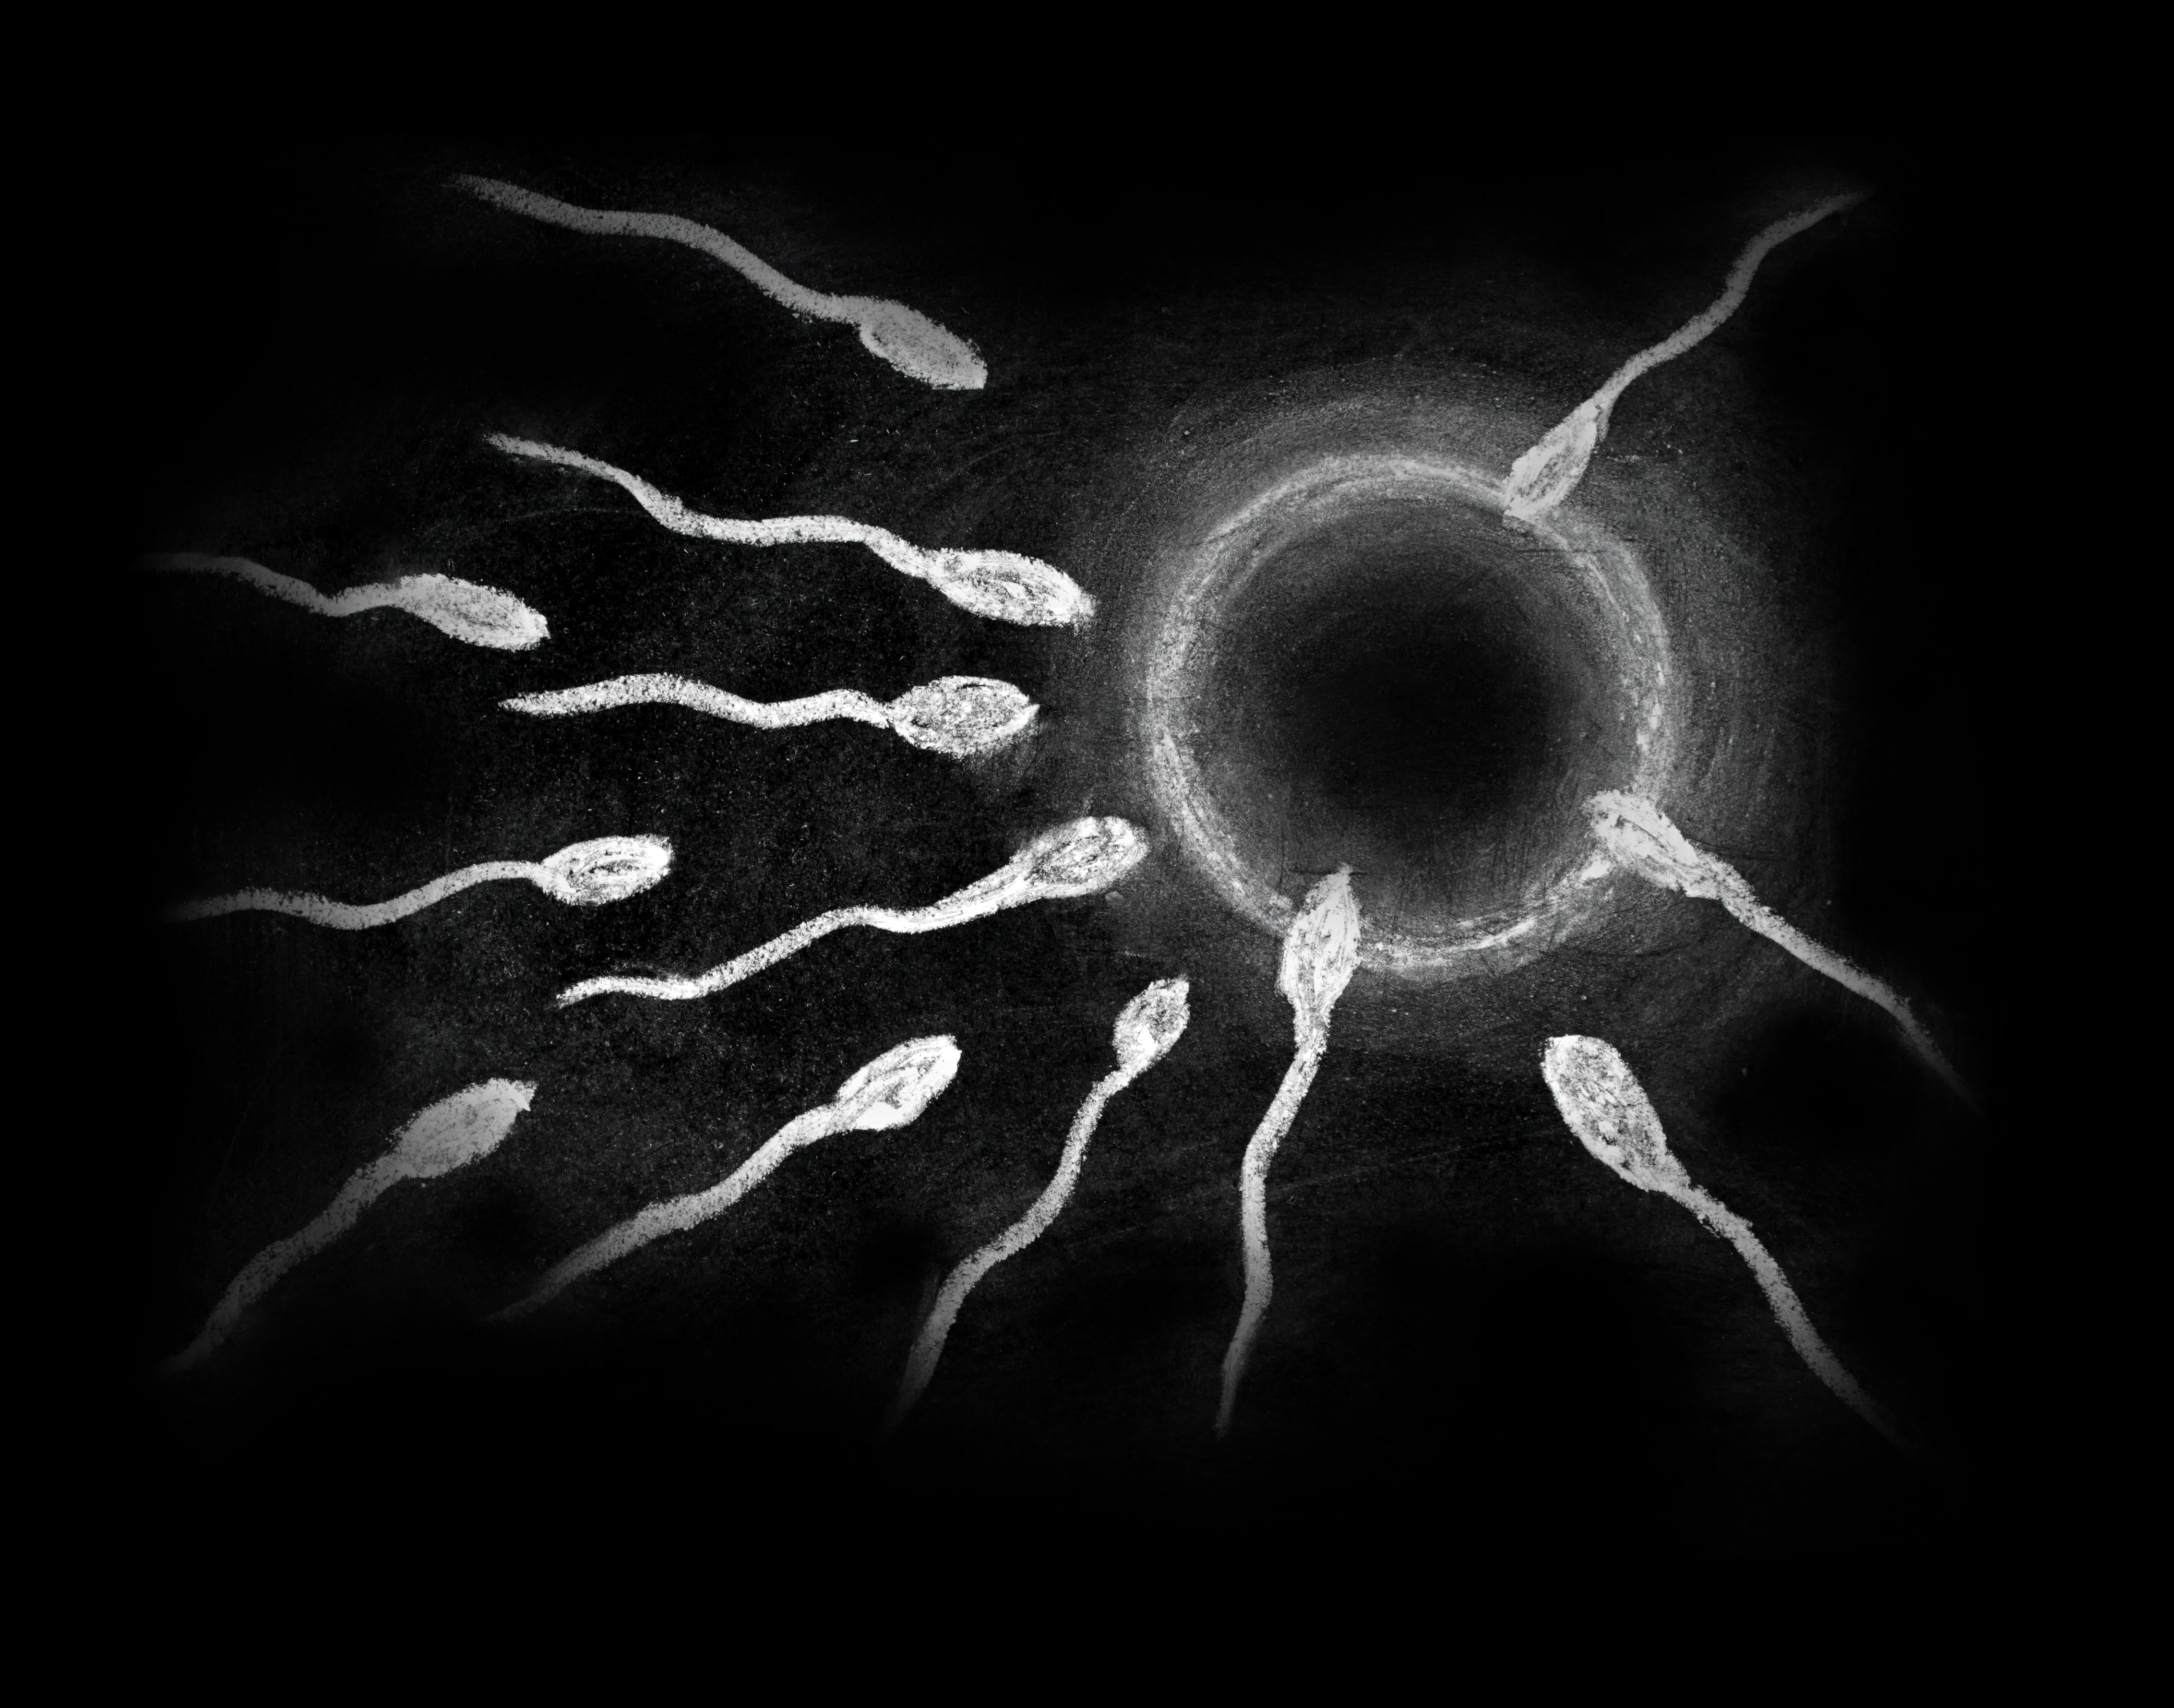 Male Fertility Options After a SCI